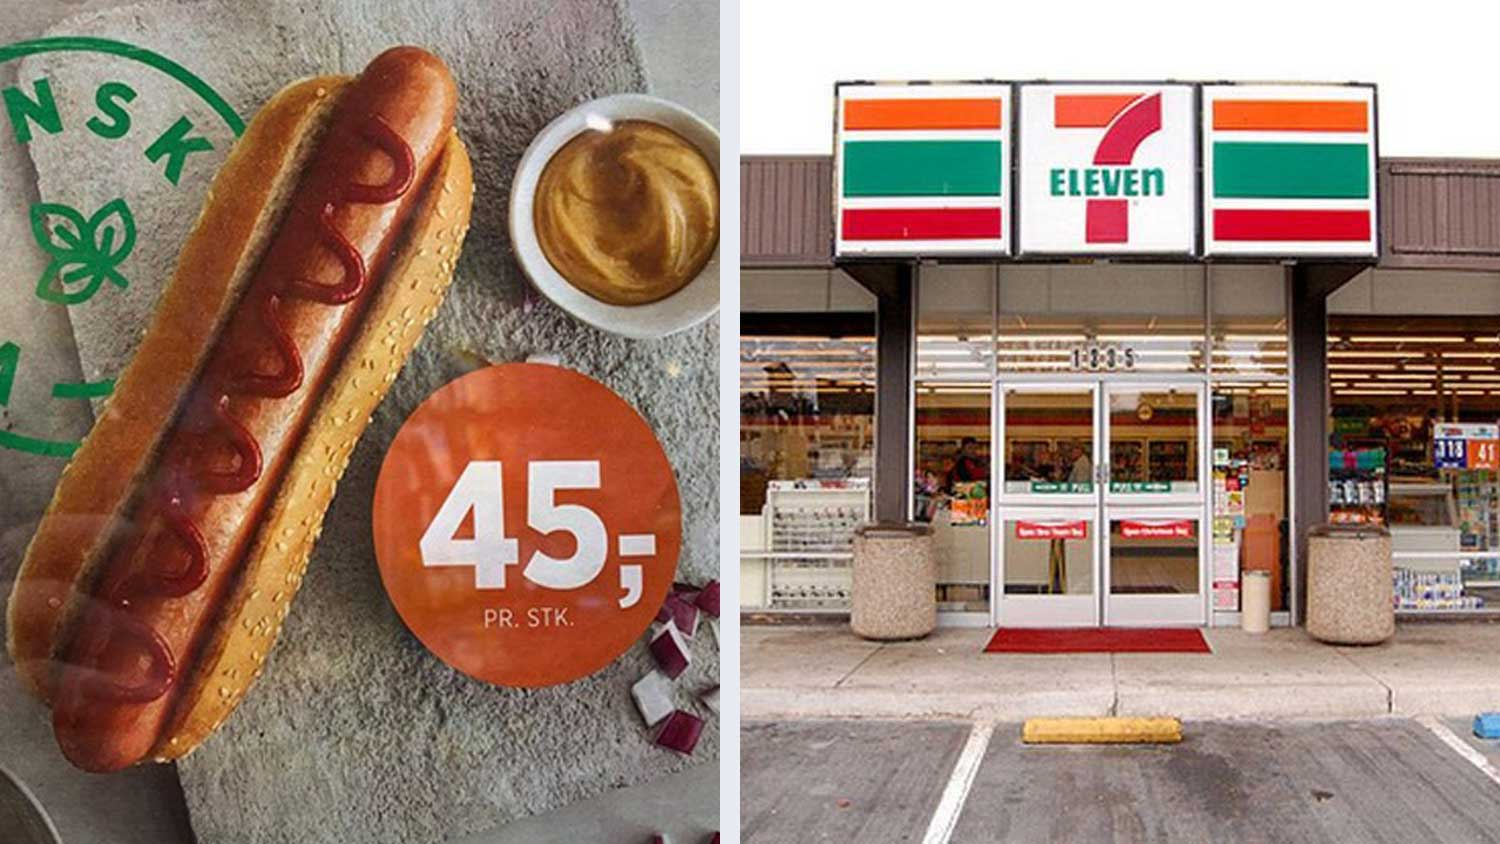 You Can Now Get Vegan Sausages at 7-Eleven